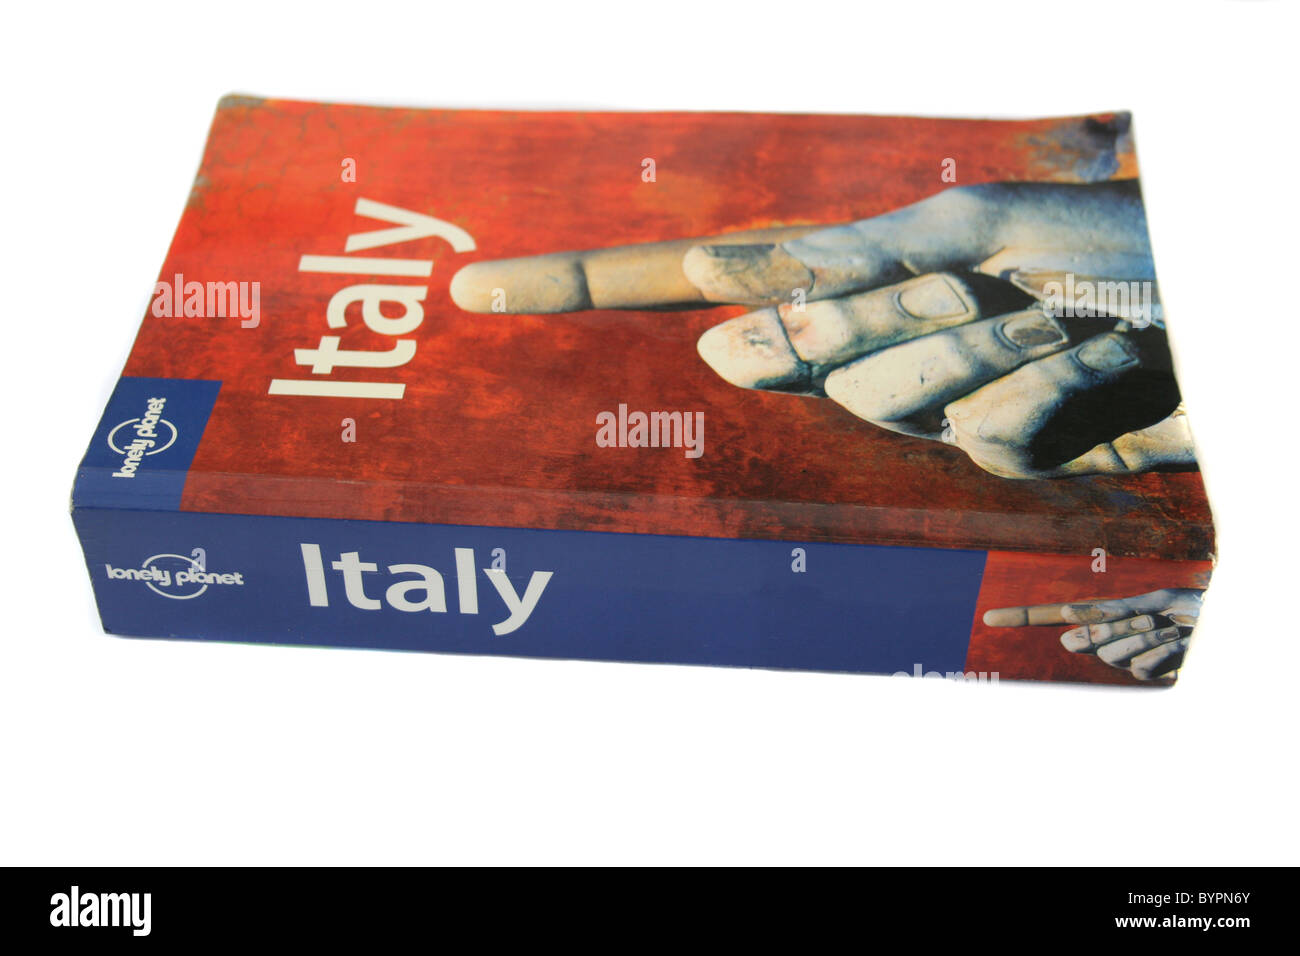 Lonely planet travel book to Italy on a white back ground. Stock Photo